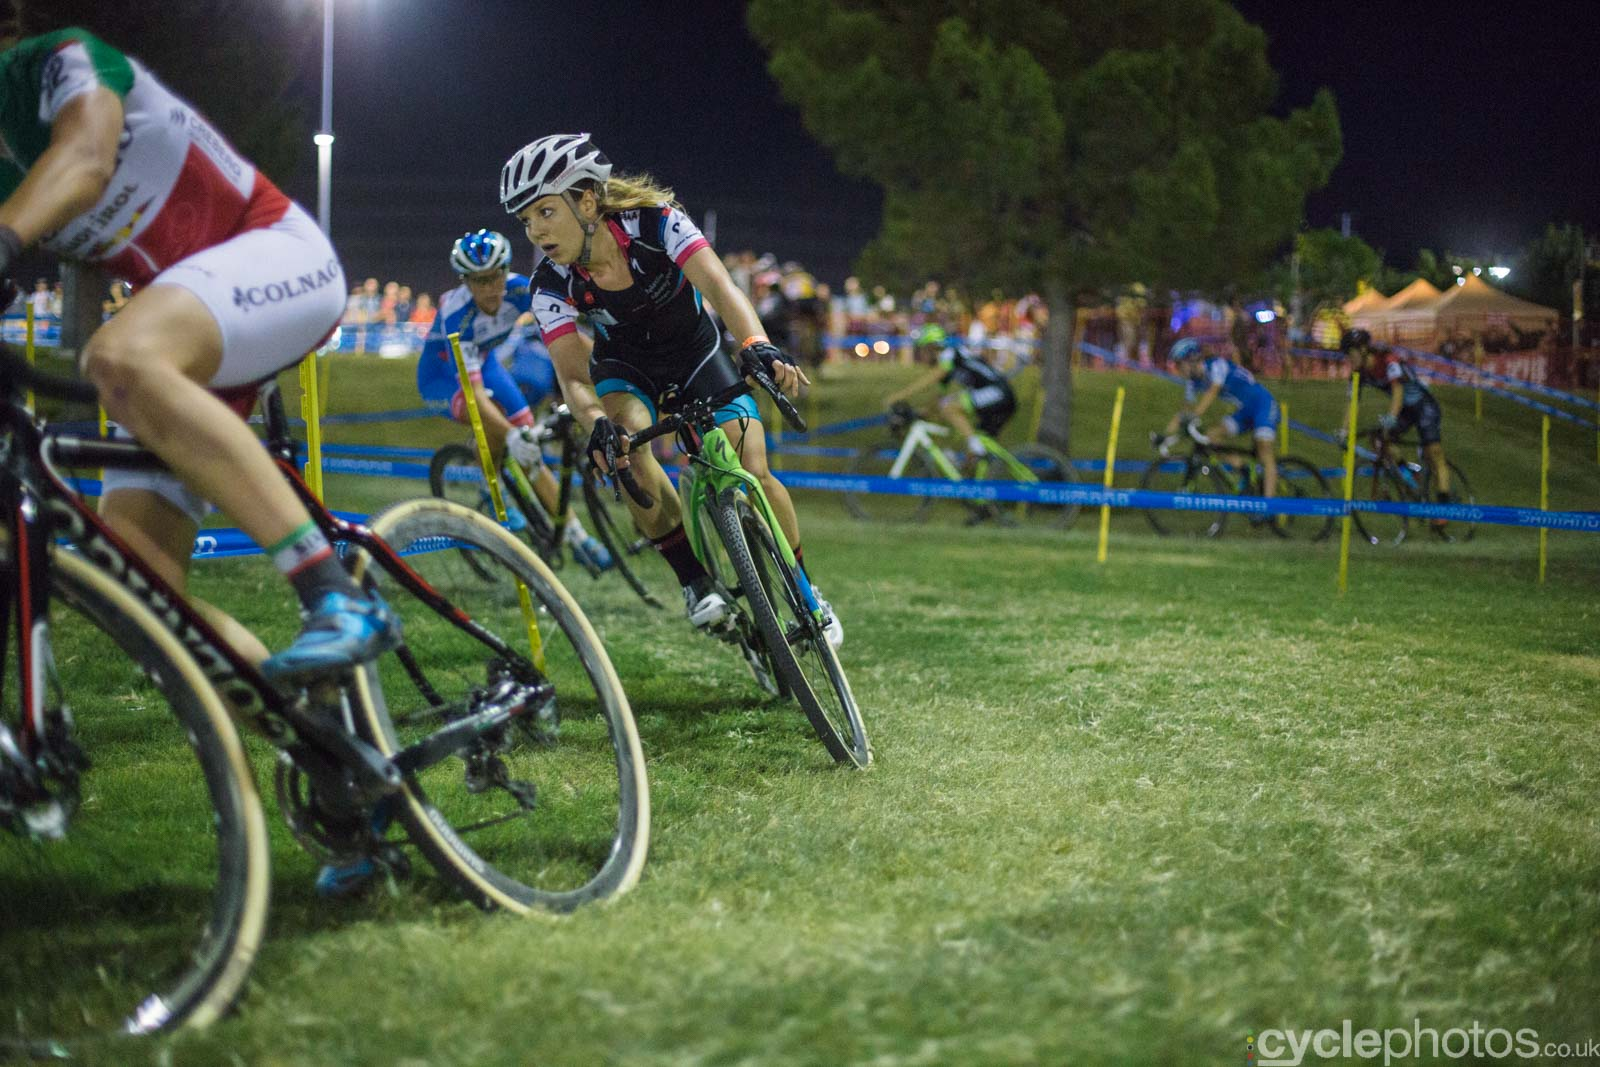 Sanne van Paassen during Crossvegas, the first round of the 2015 UCI Cyclocross World race in Las Vegas, USA.